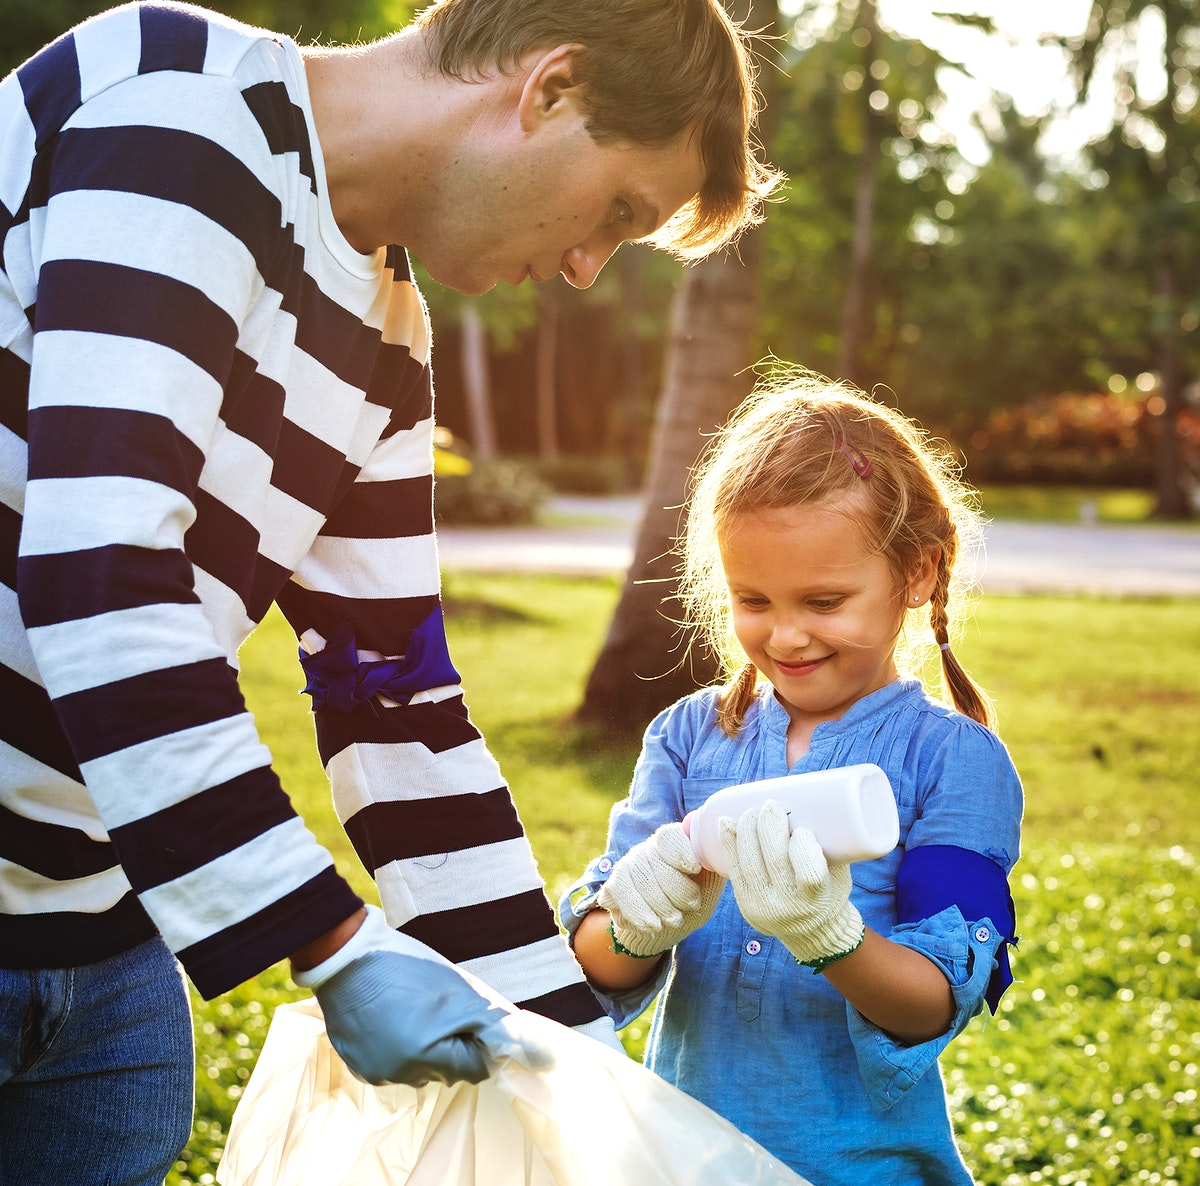 Father and daughter cleaning the park